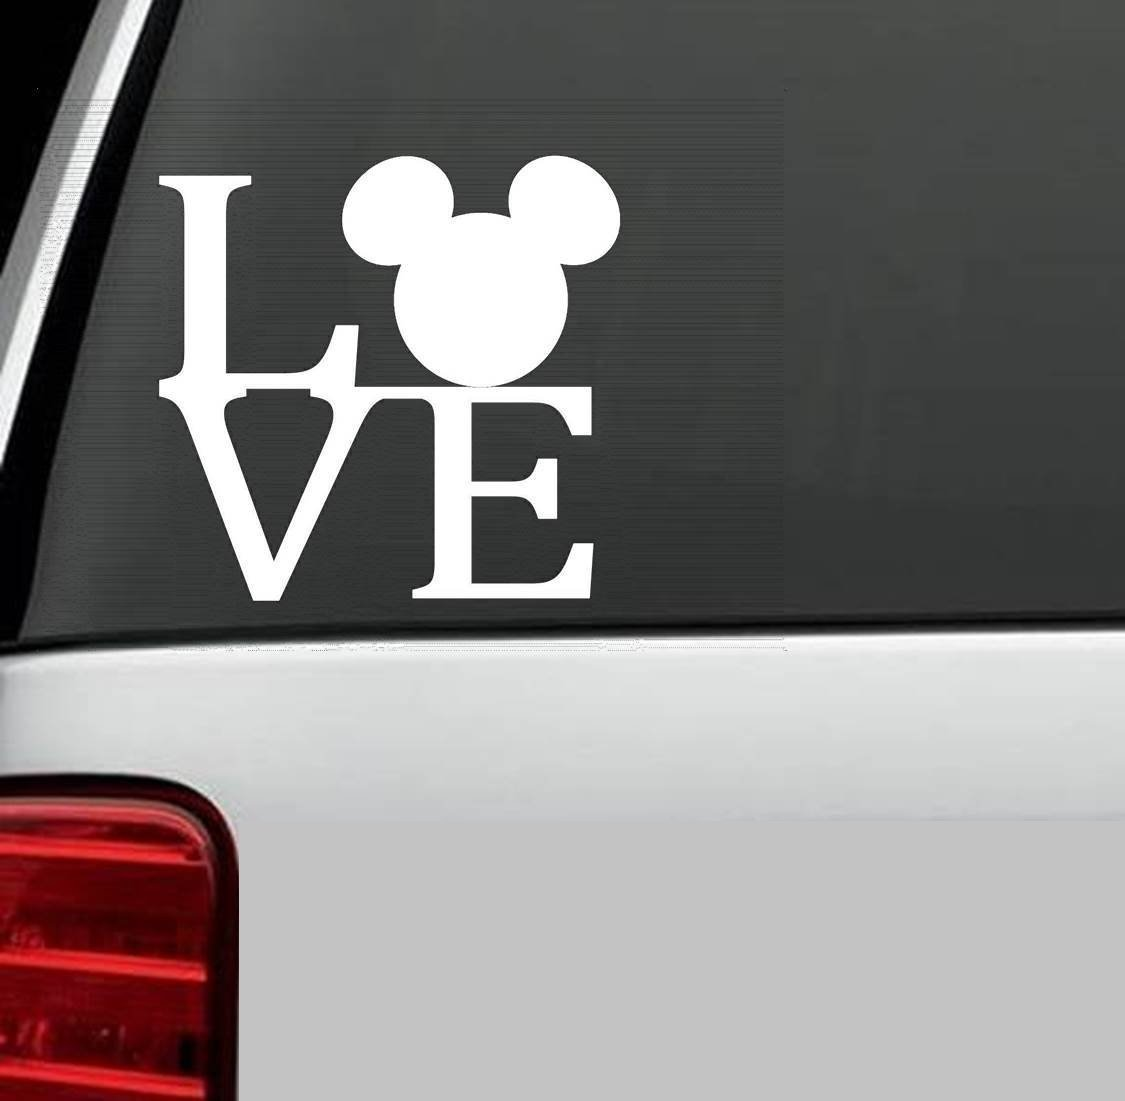 MICKEY MOUSE EARS LOGO Vinyl Decal Sticker DISNEY for Car Truck SUV Boat Trailer Mirror Wall Laptop Art (white)